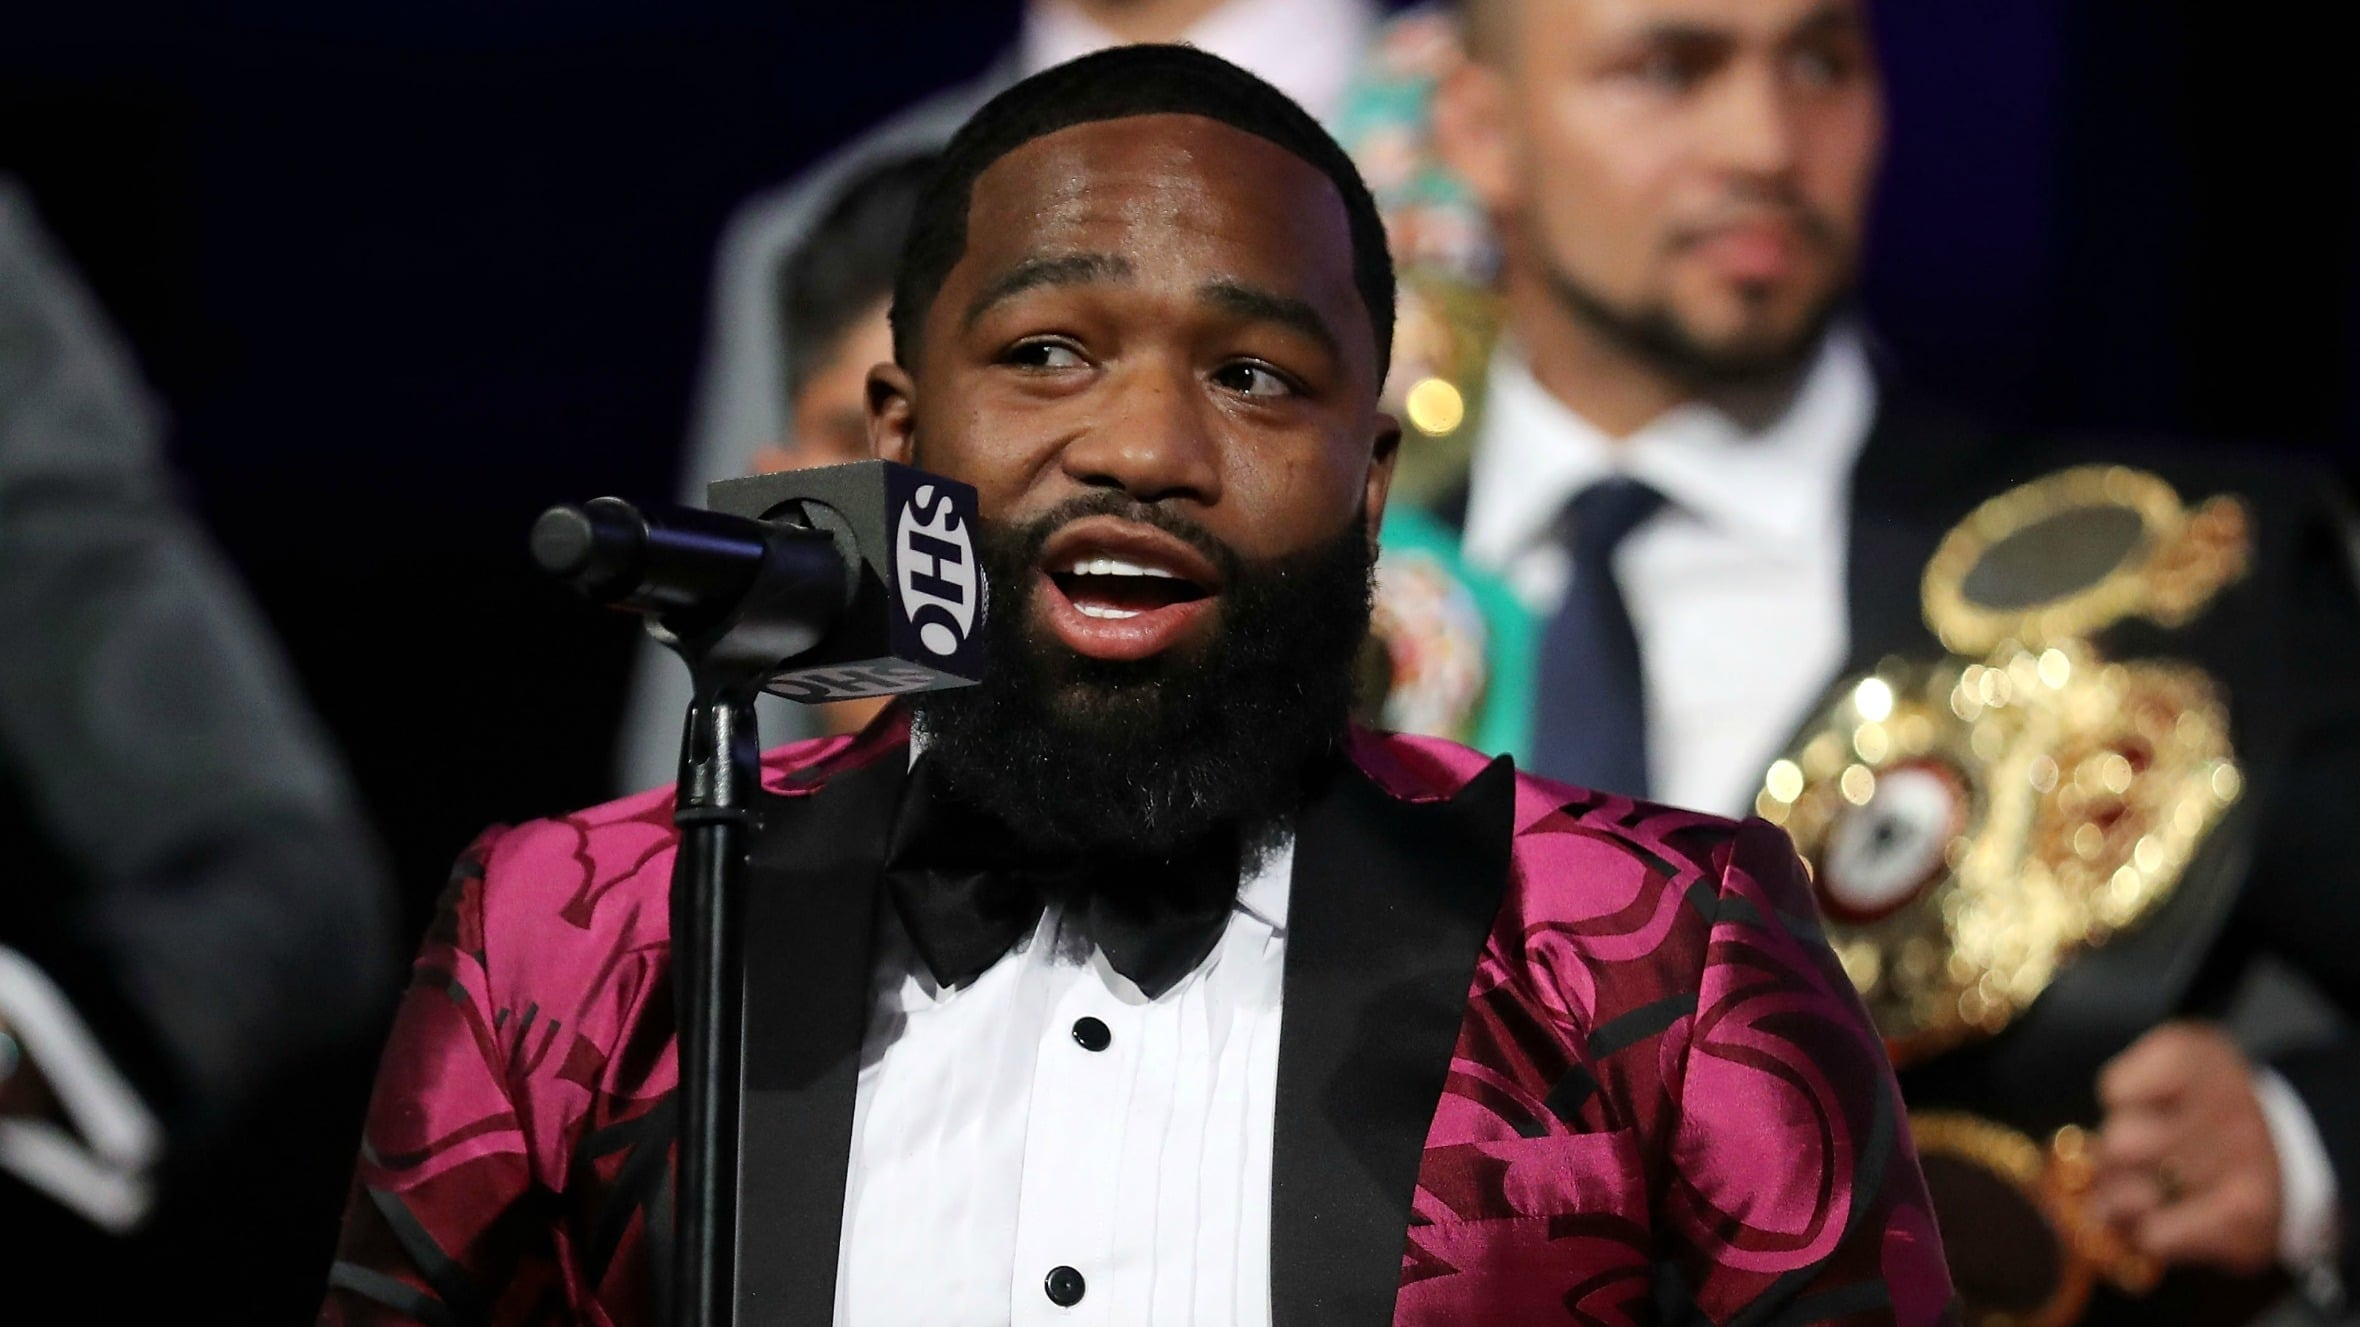 Adrien Broner arrested for alleged sexual battery